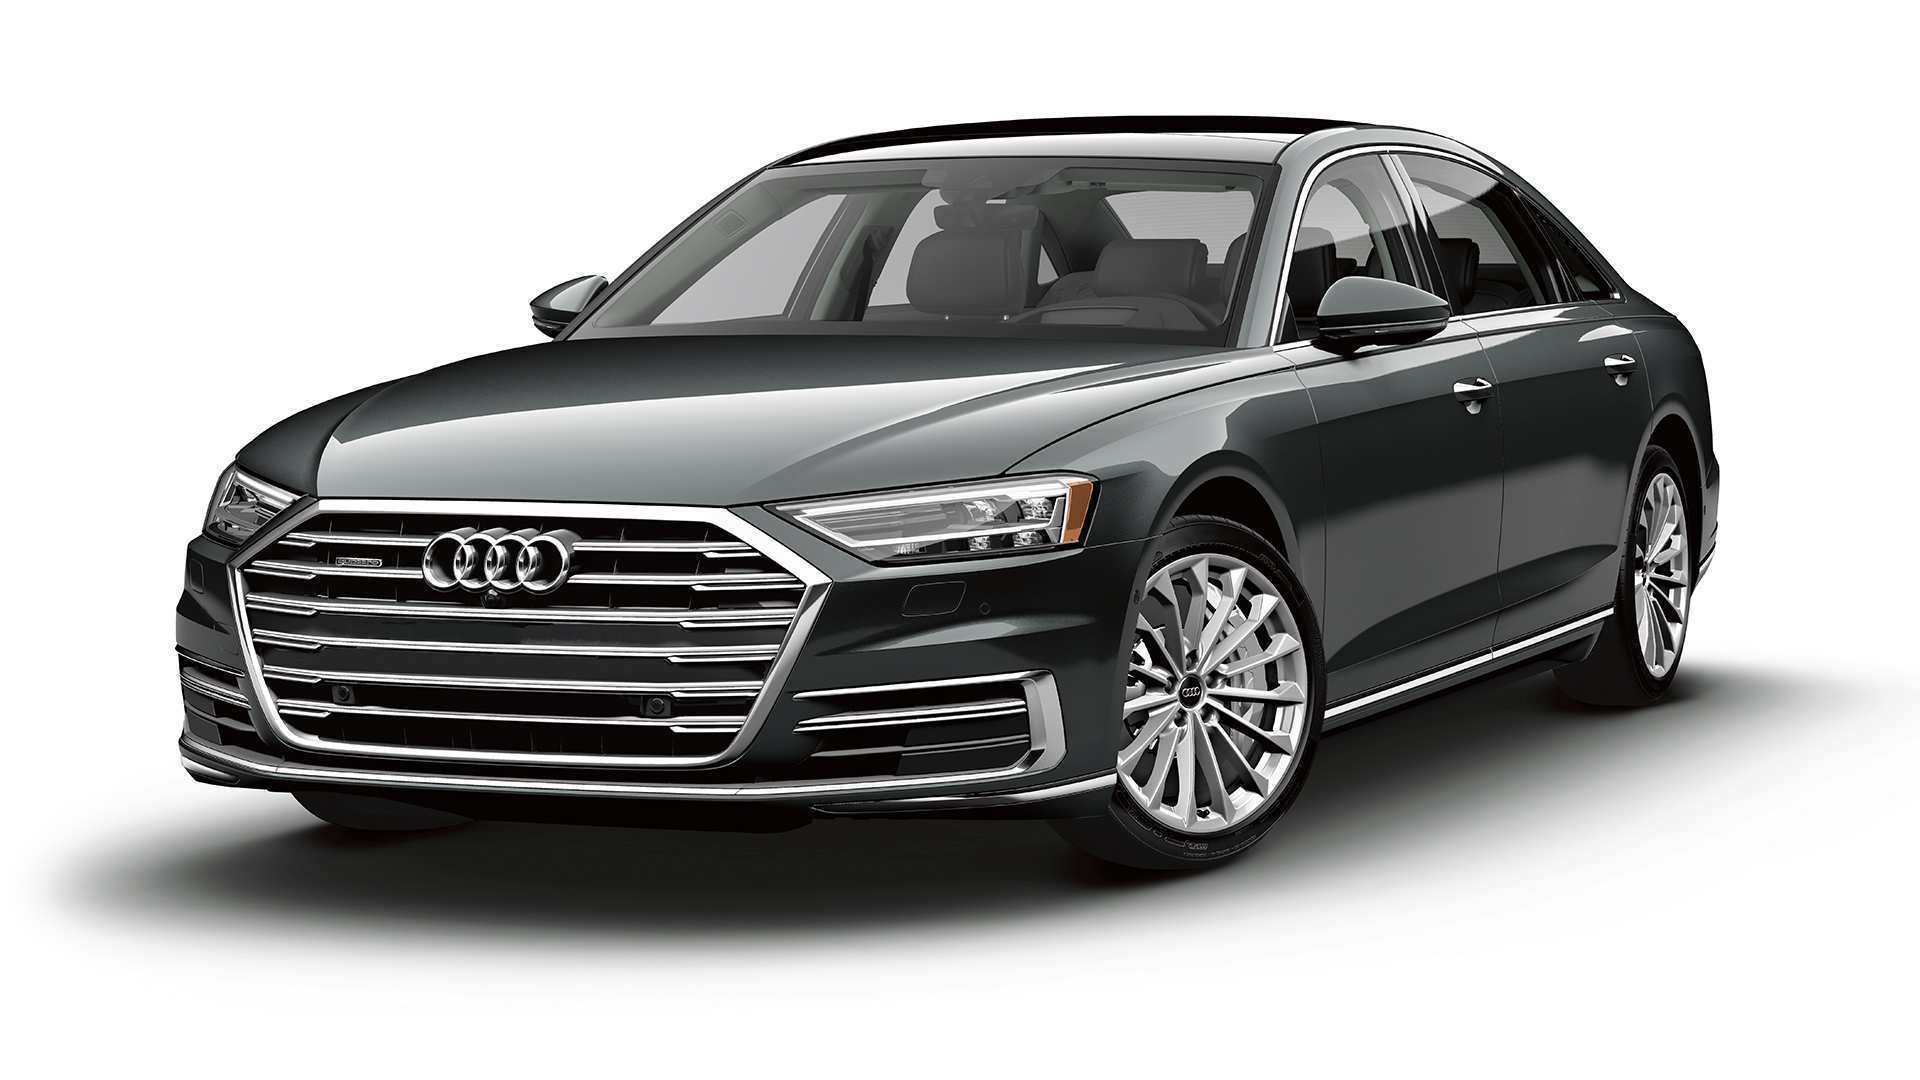 94 Concept of 2019 Audi Models Release Date with 2019 Audi Models